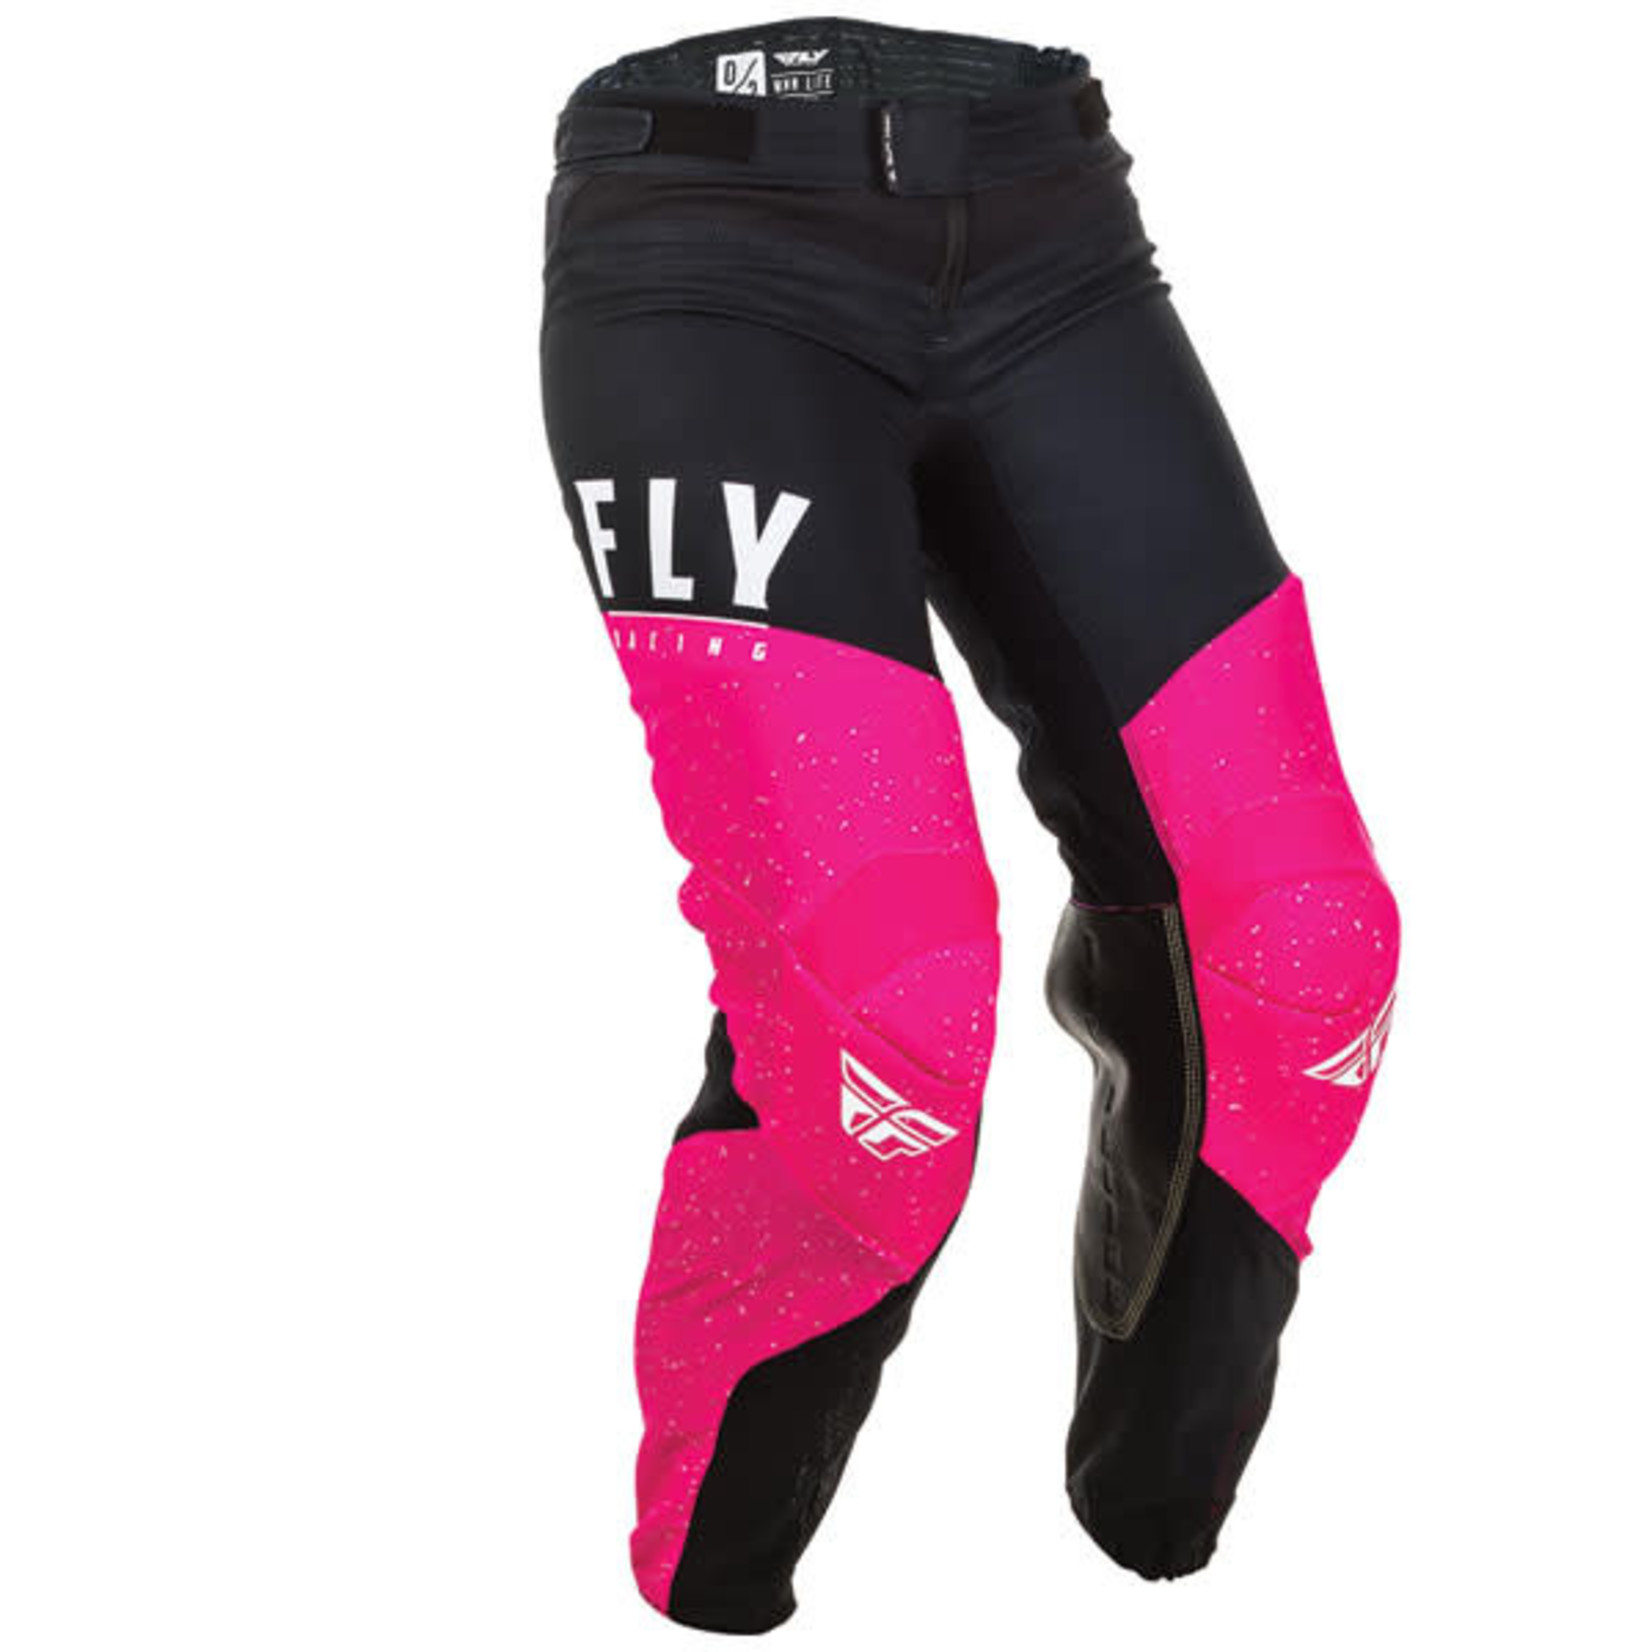 Fly Fly Pant